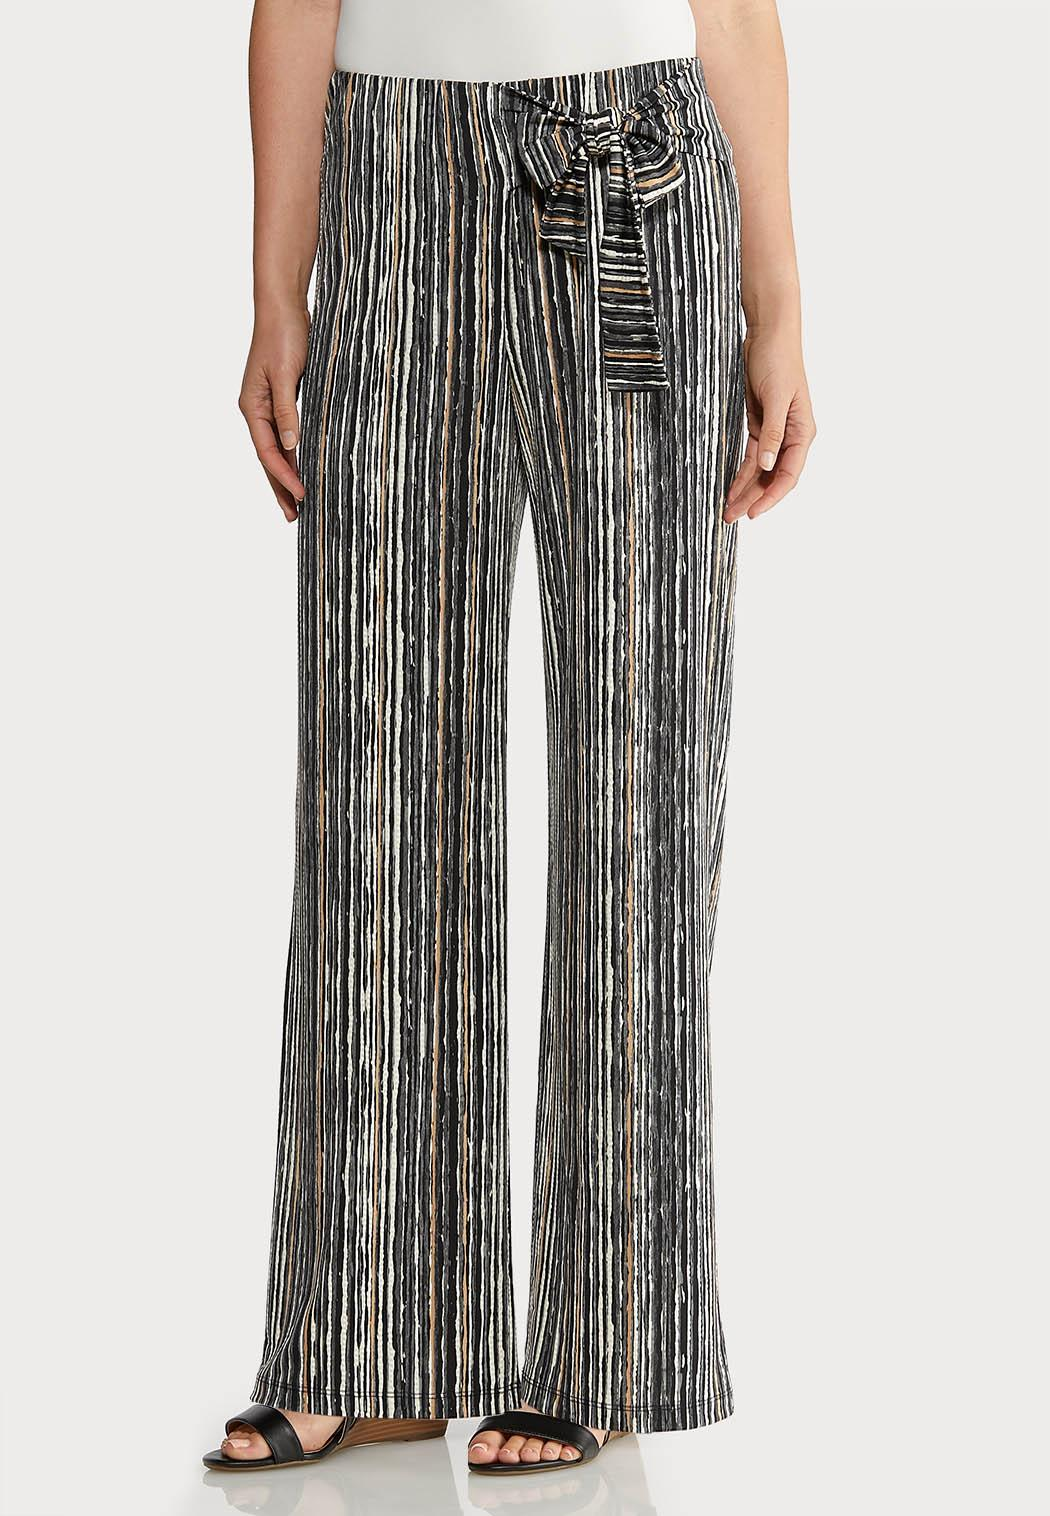 Petite Striped Bow Wide Leg Pants